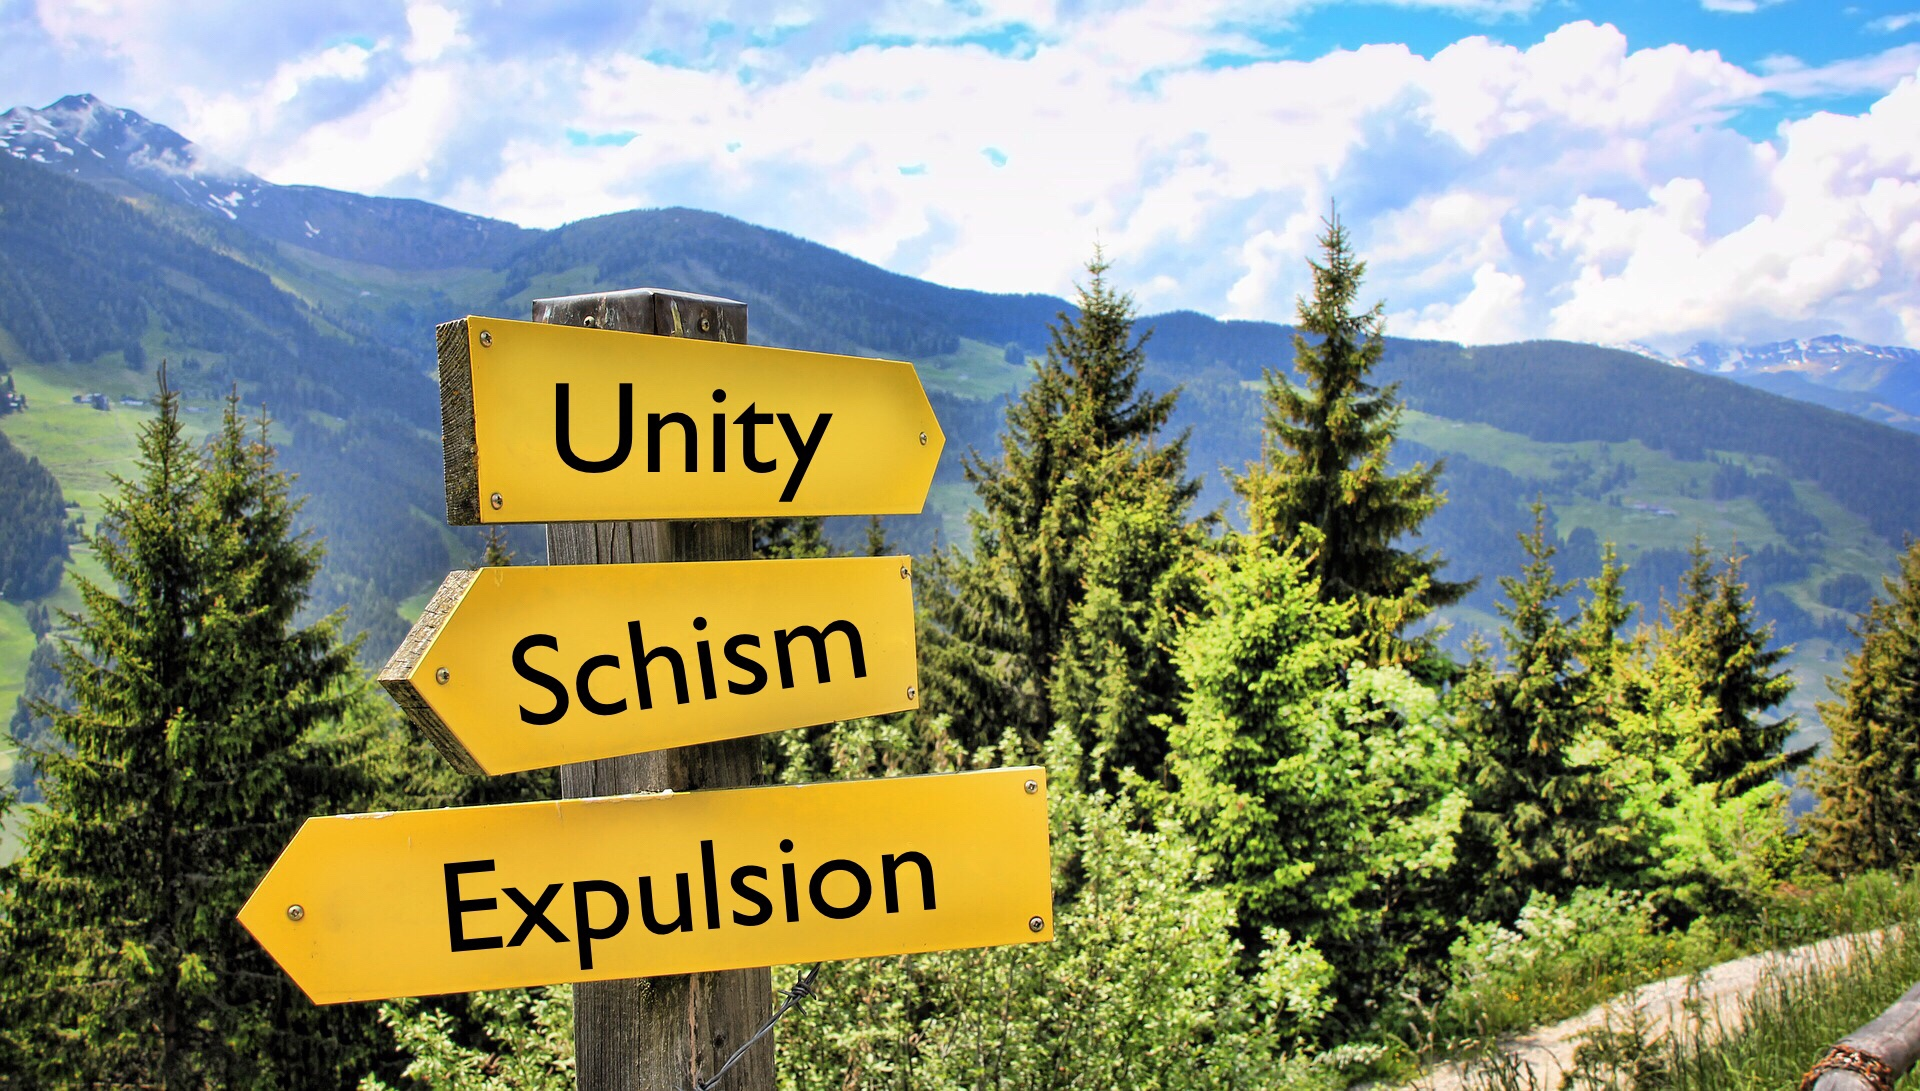 Schism, Expulsion, And Diversity: #UMC Unityu0027s Varied Definitions